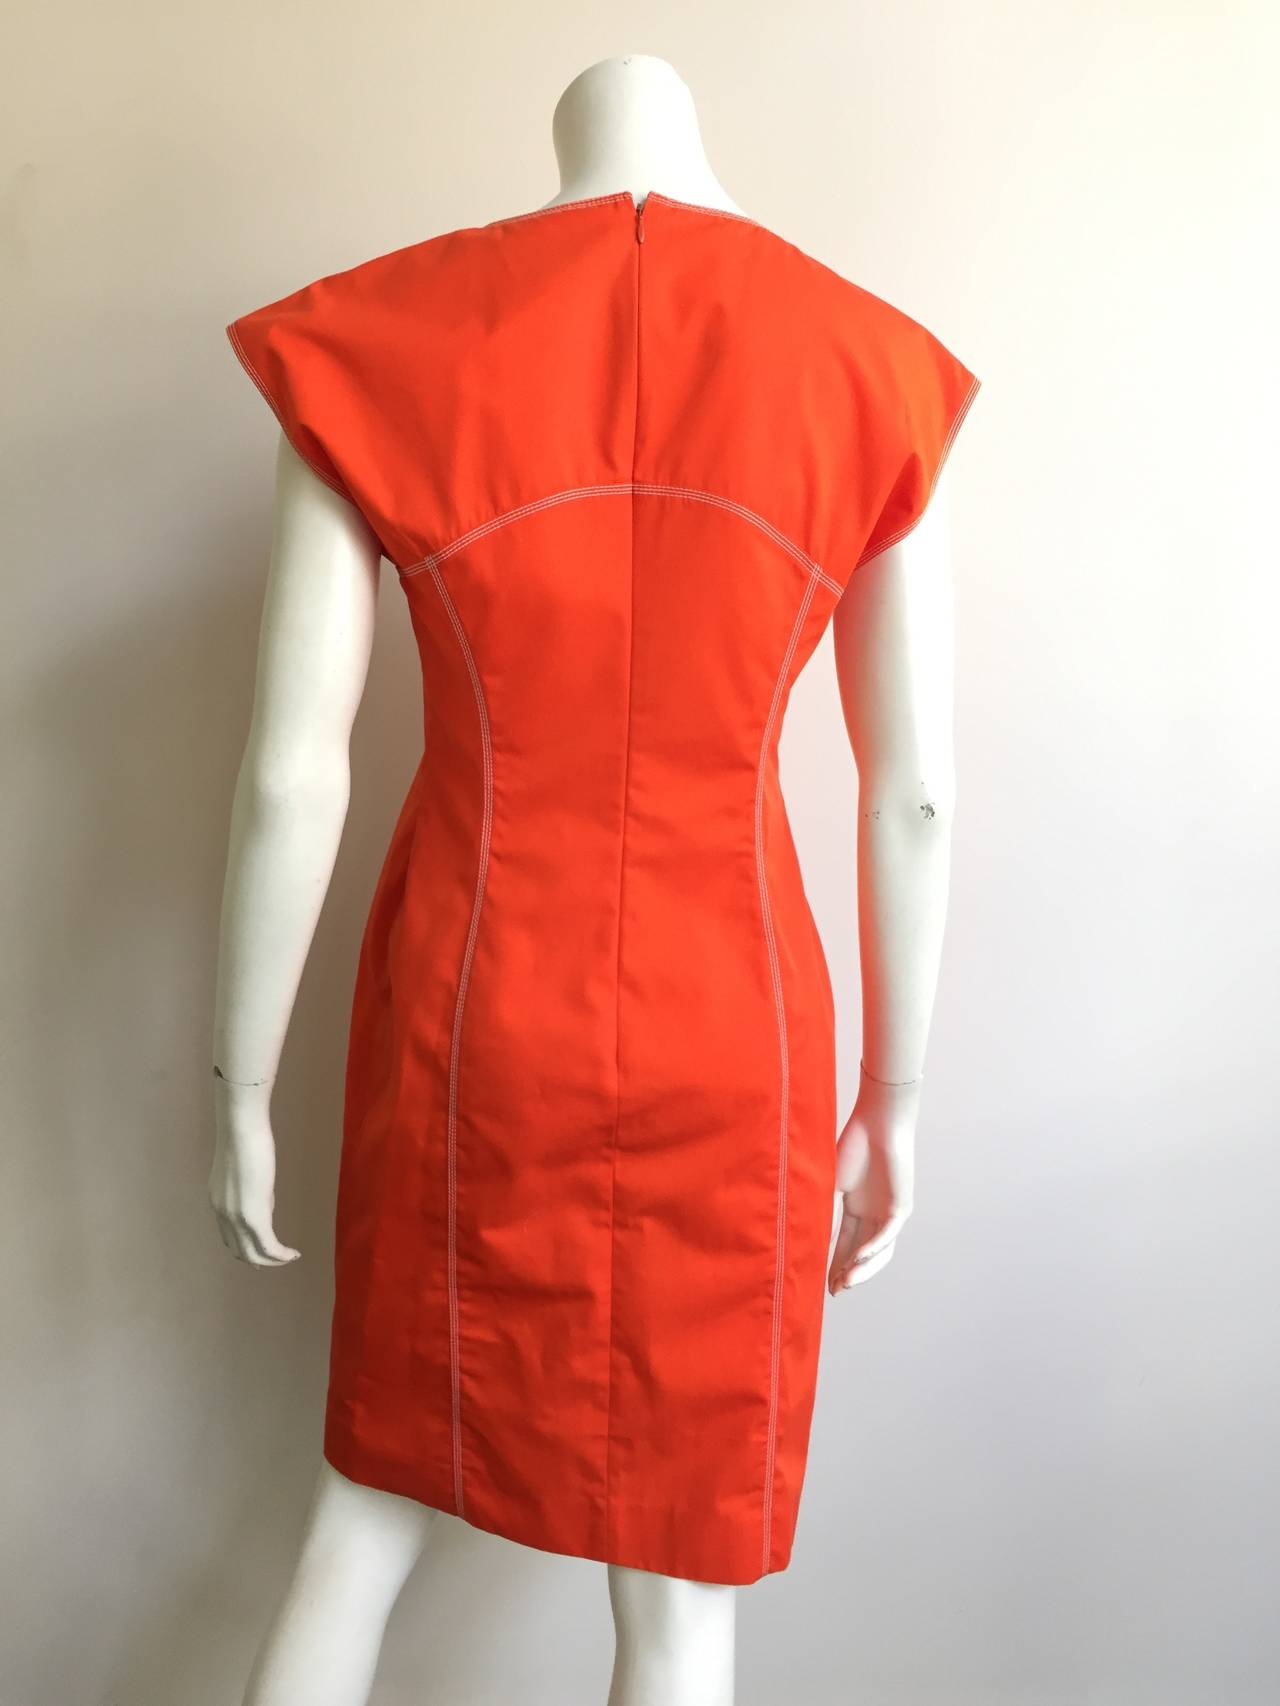 Courreges Paris Dress With Pockets Size 8, 1980s For Sale 2